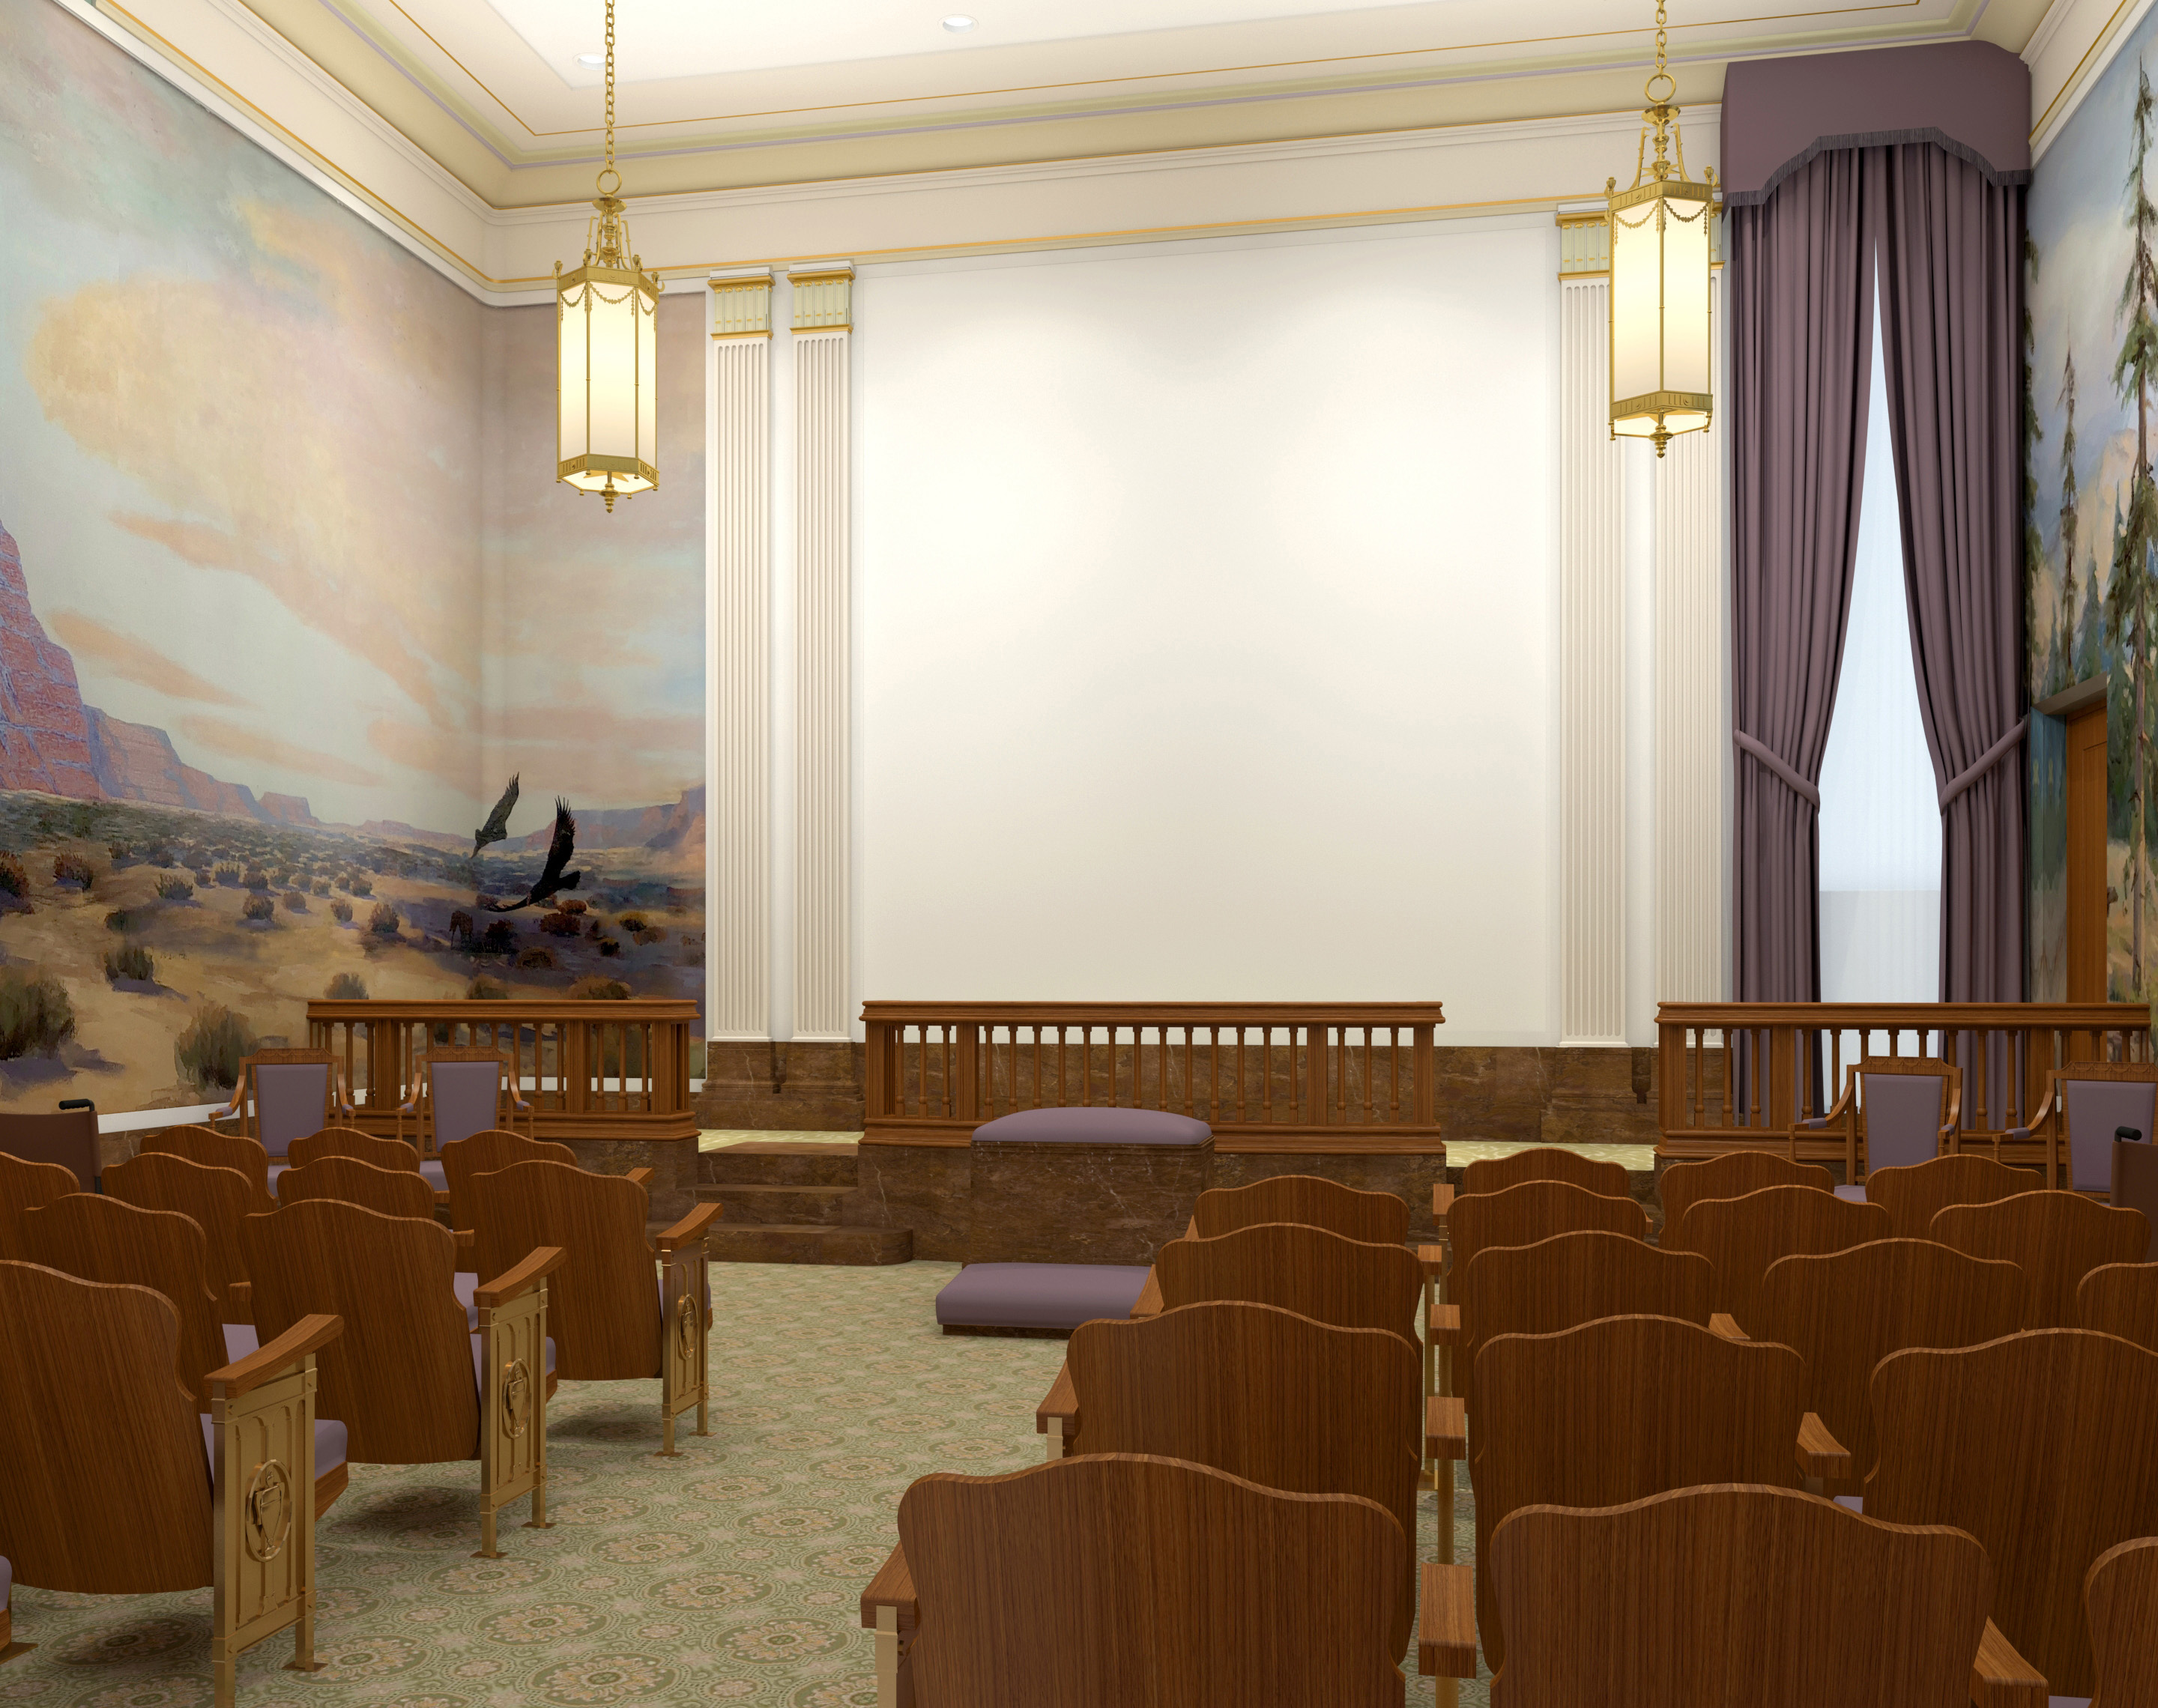 Rendering of an instruction room in the Mesa Arizona Temple.